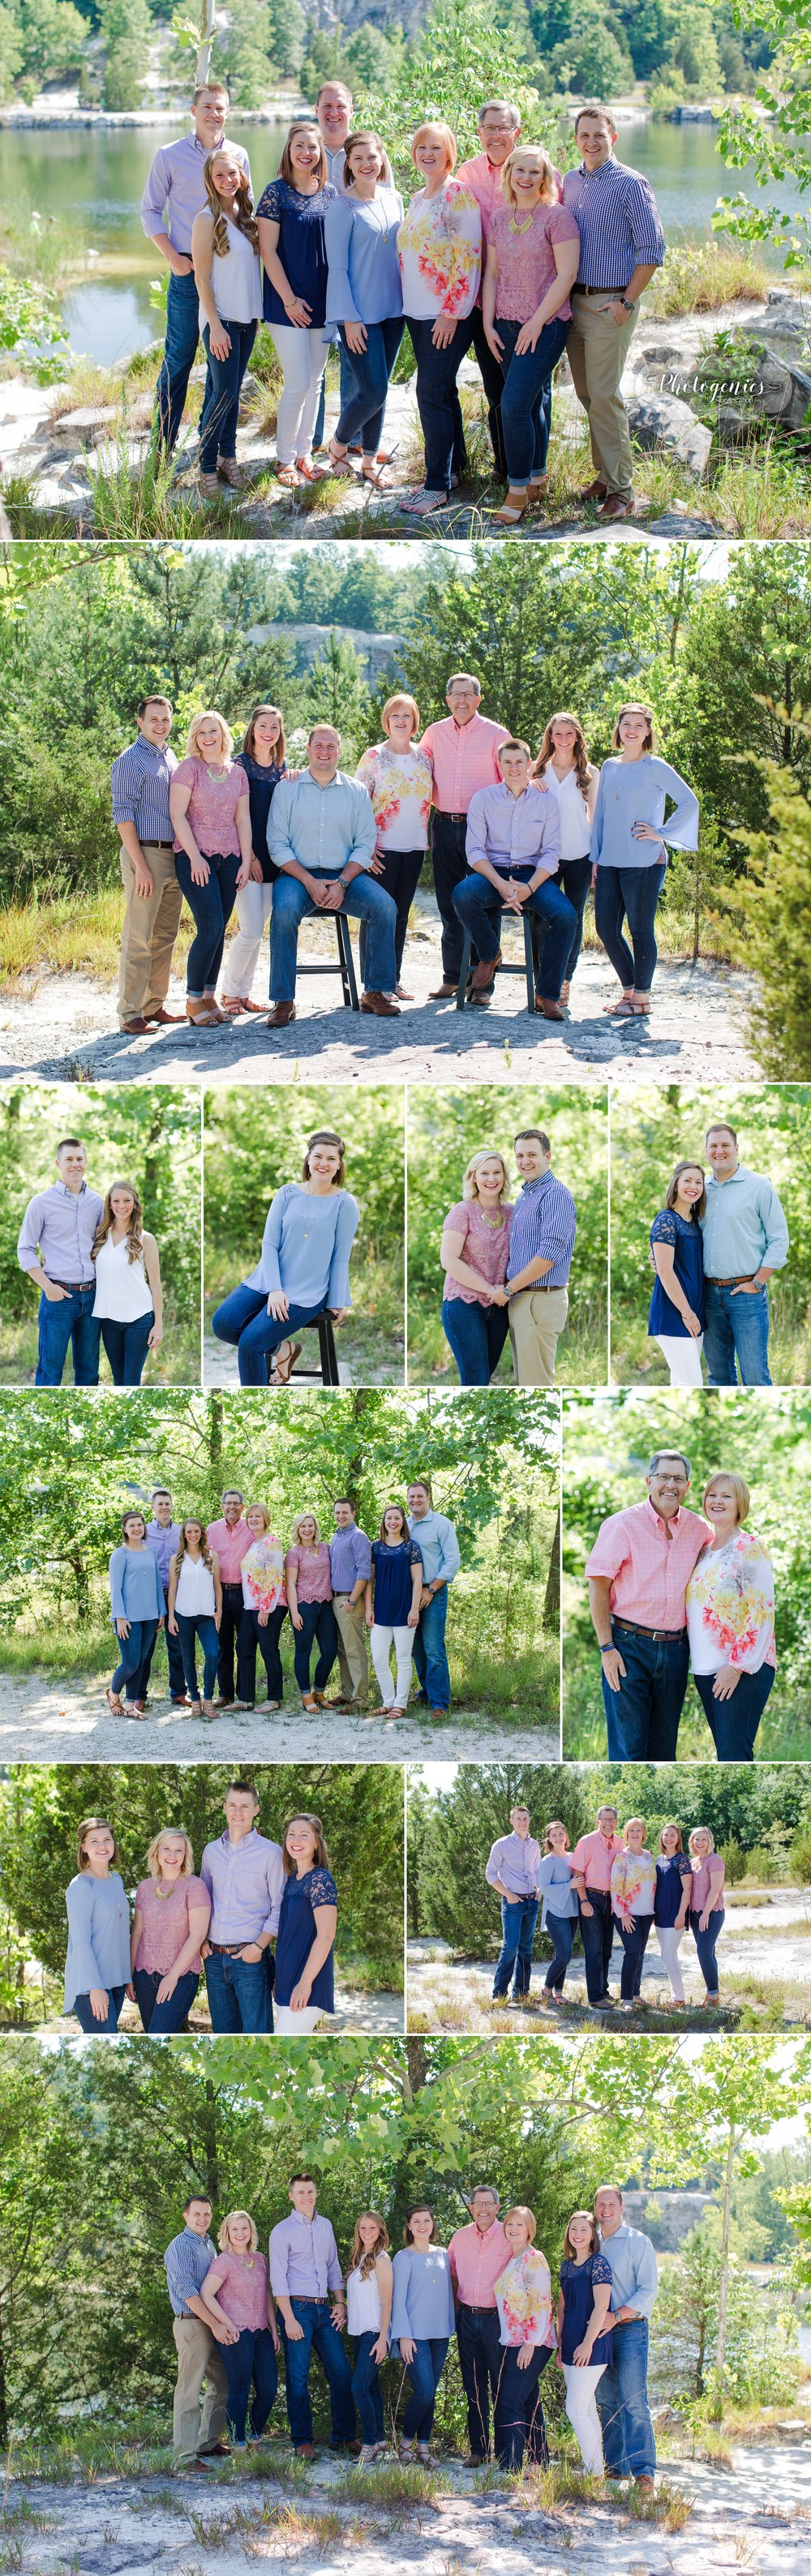 extended_family_session_photography_poses_ideas_colors_what_to_wear_large_group_klondike_park_missouri_family